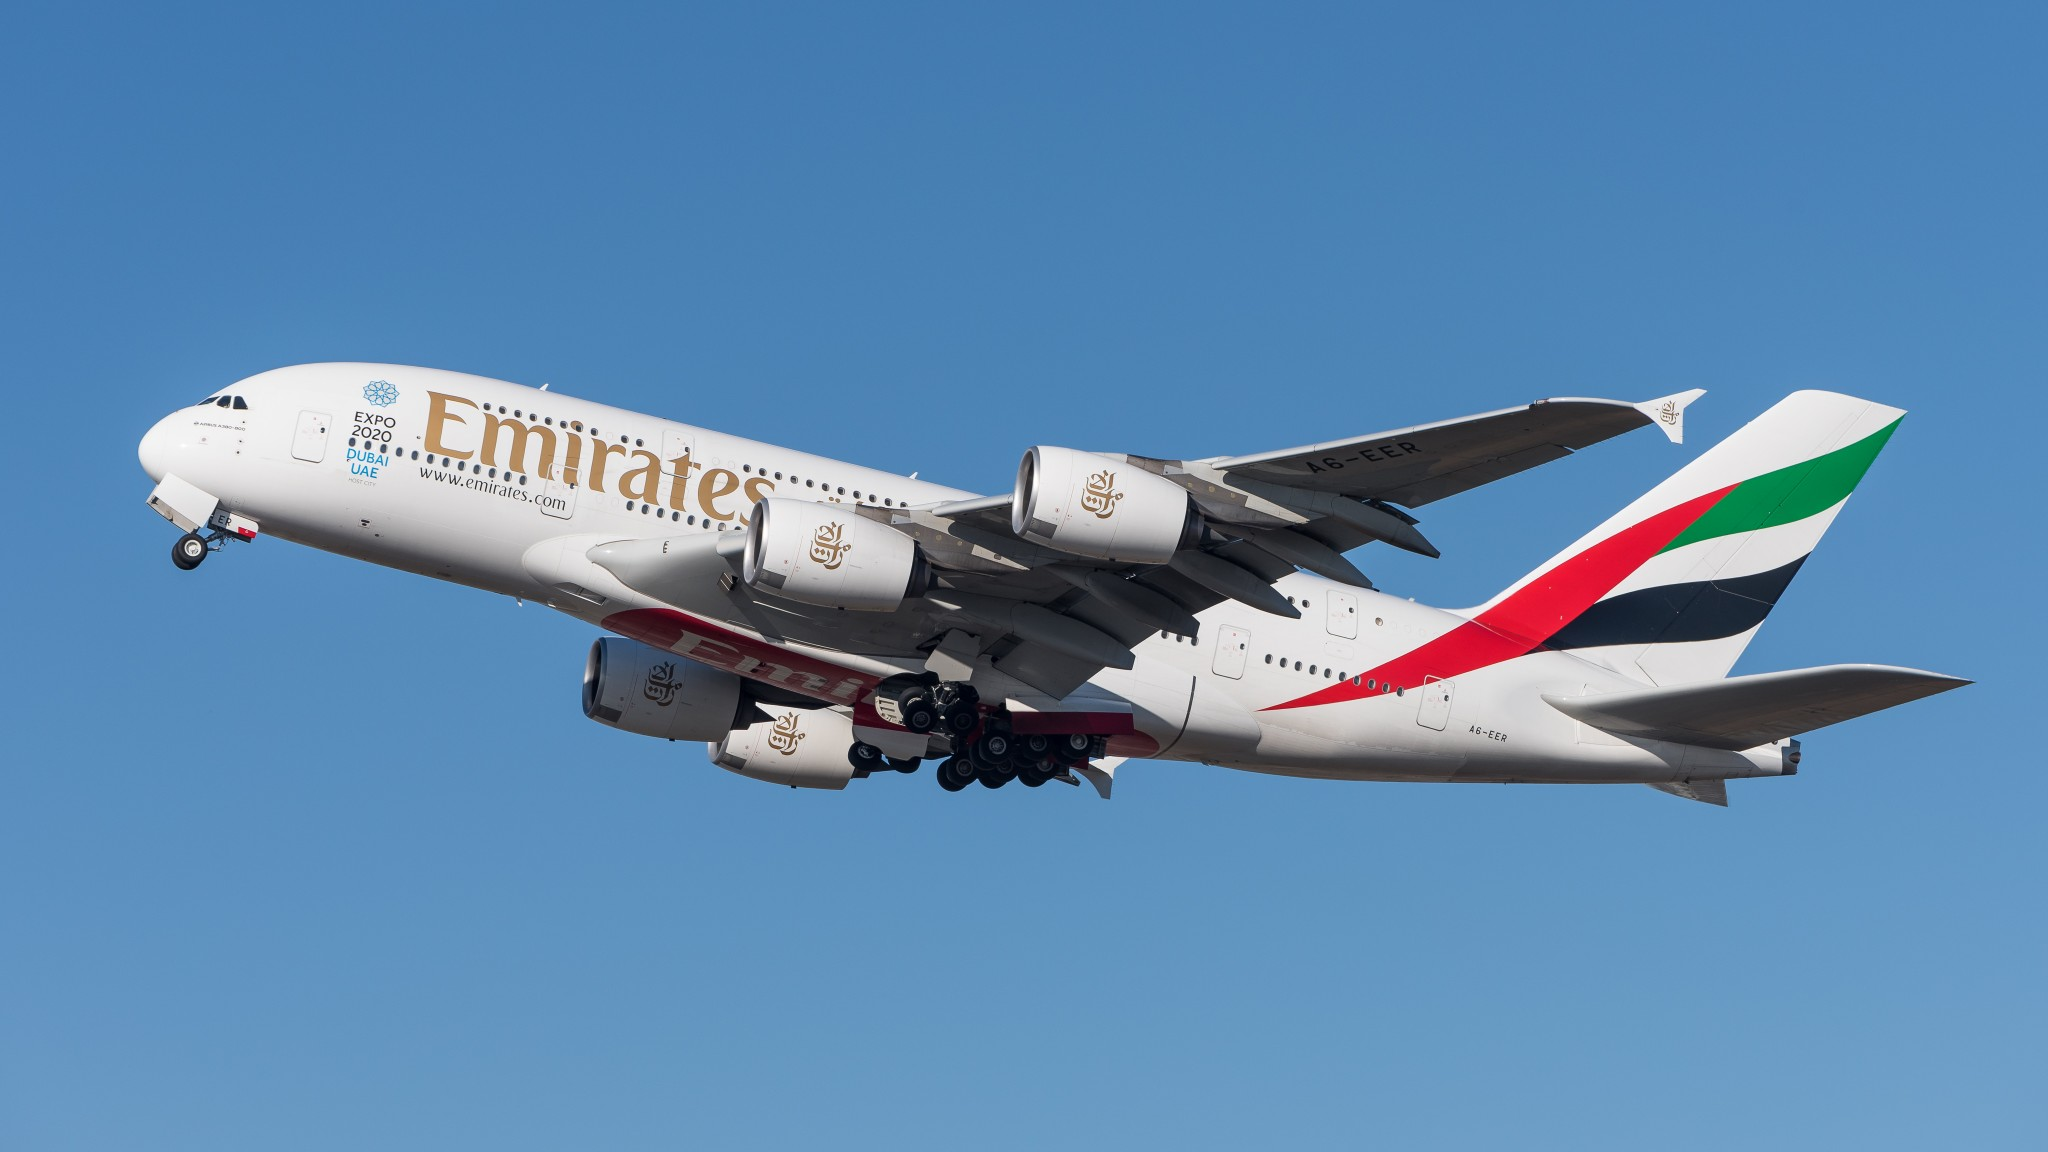 Photo of Emirates planerar att flyga 70% av normal kapacitet i vinter